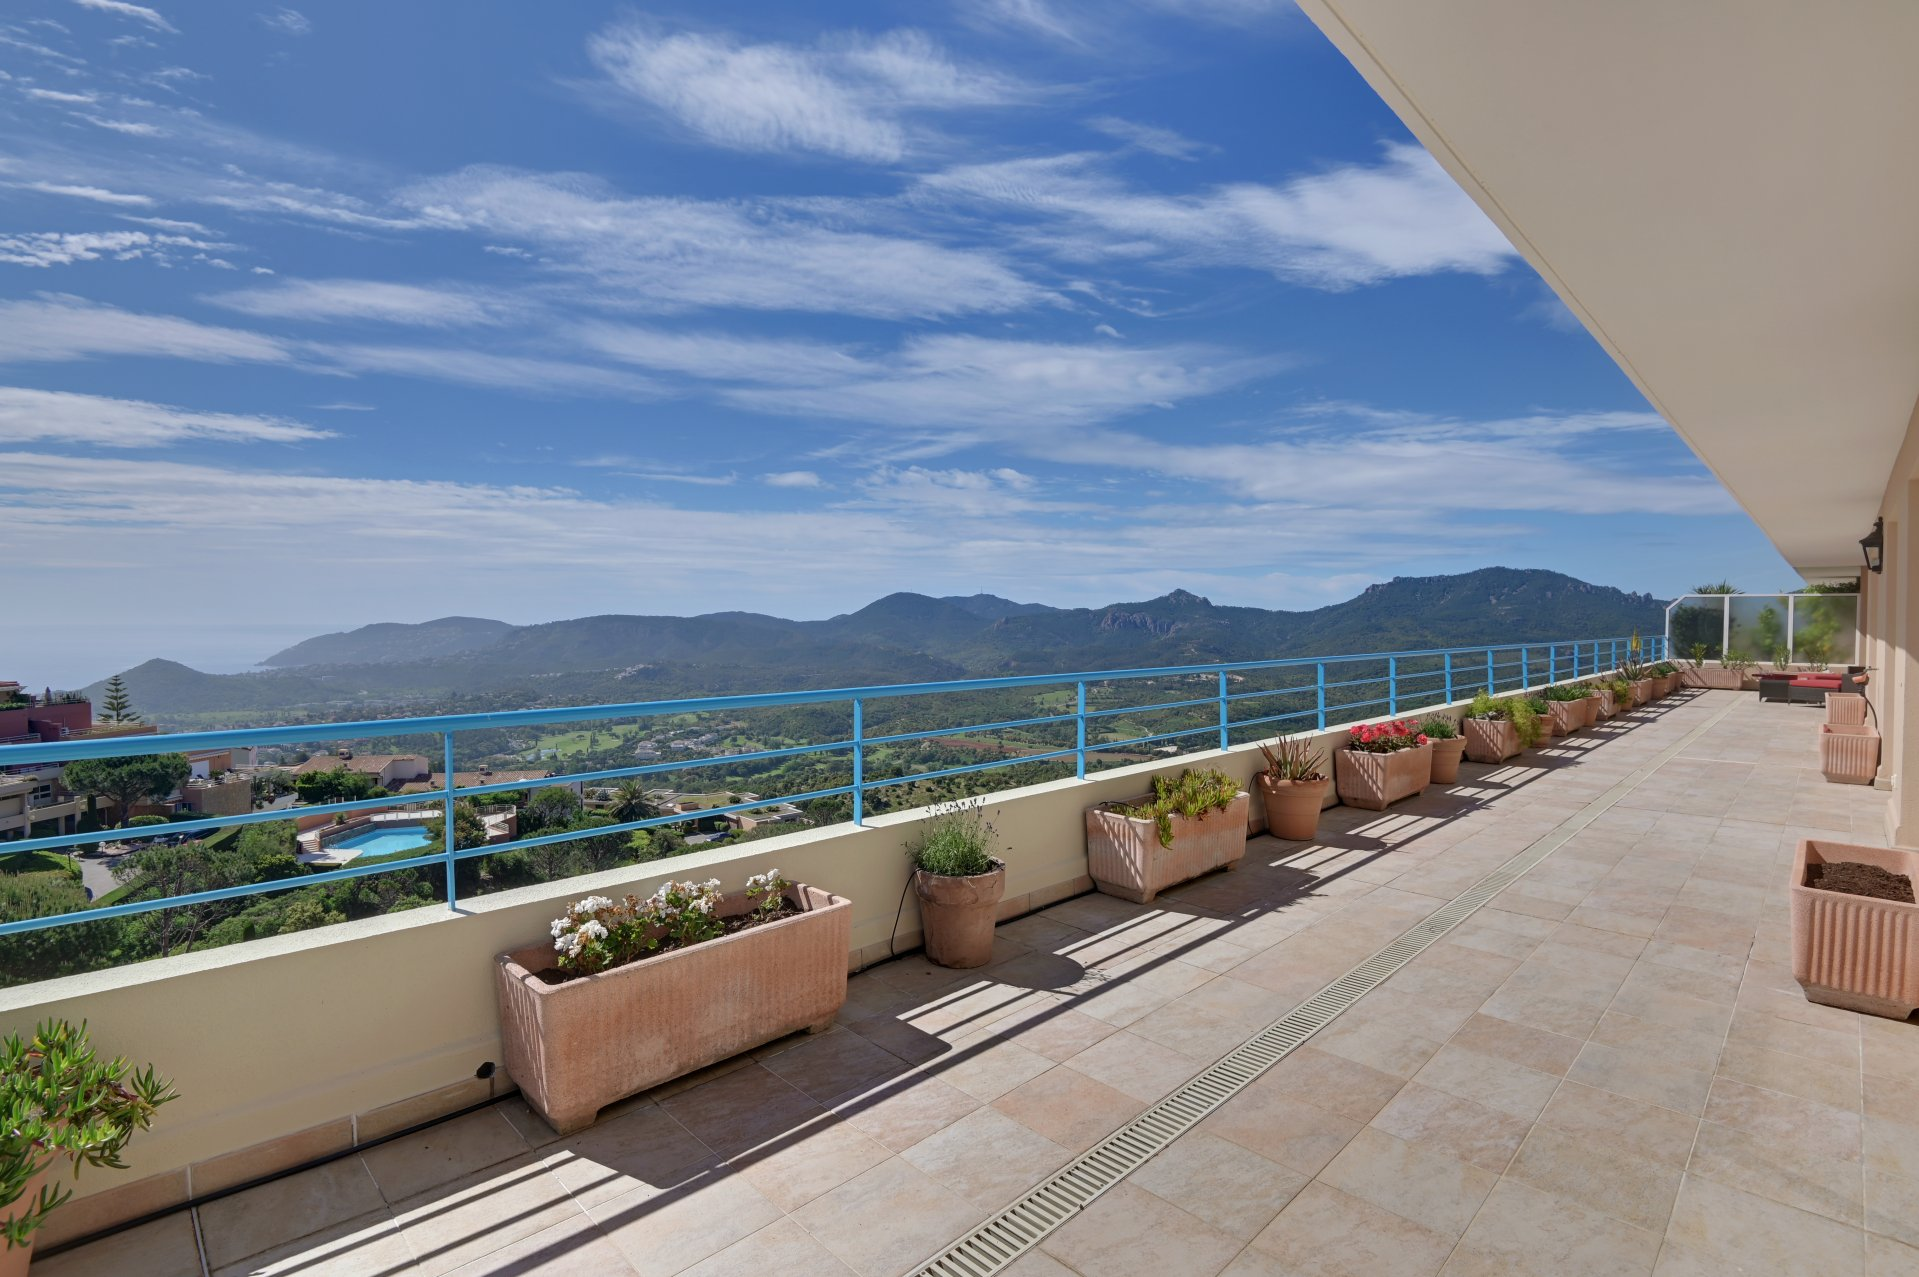 UNDER OFFER - Mandelieu close to Cannes - Sole agent - Stunning views for this 200 m2 penthouse with 115 m2 terraces.